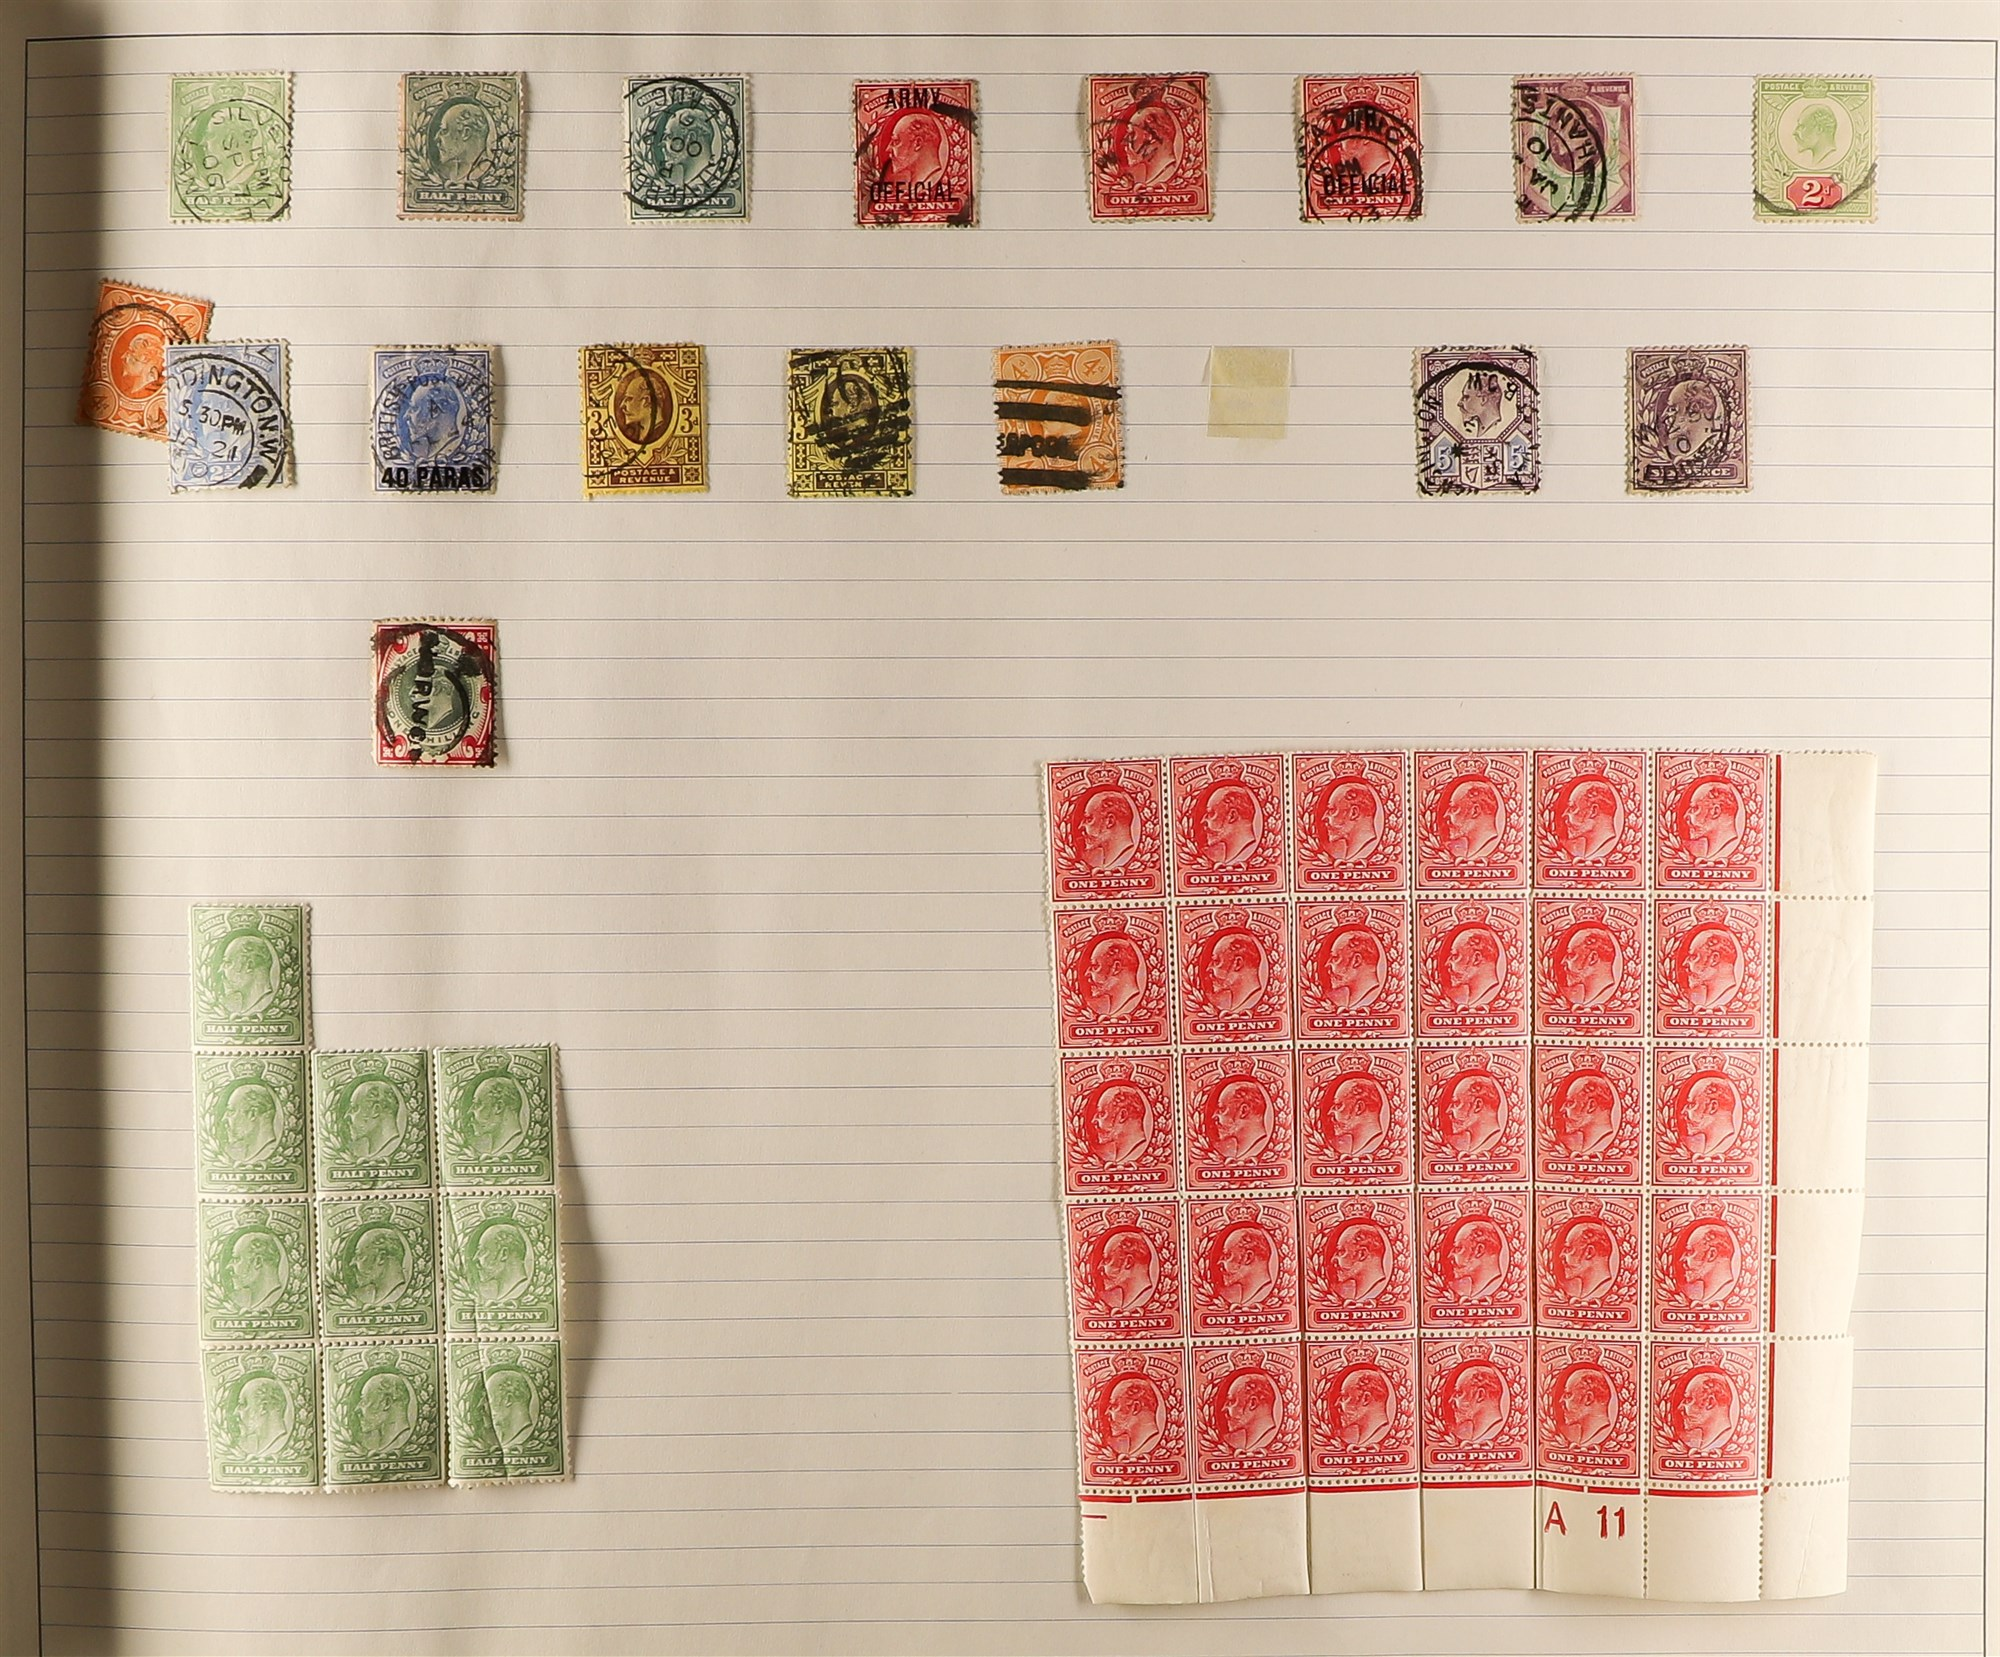 GREAT BRITAIN 1840-1999 COLLECTION in a ledger album, with 1840 1d blacks (2, fair), 1d red plates - Image 3 of 5